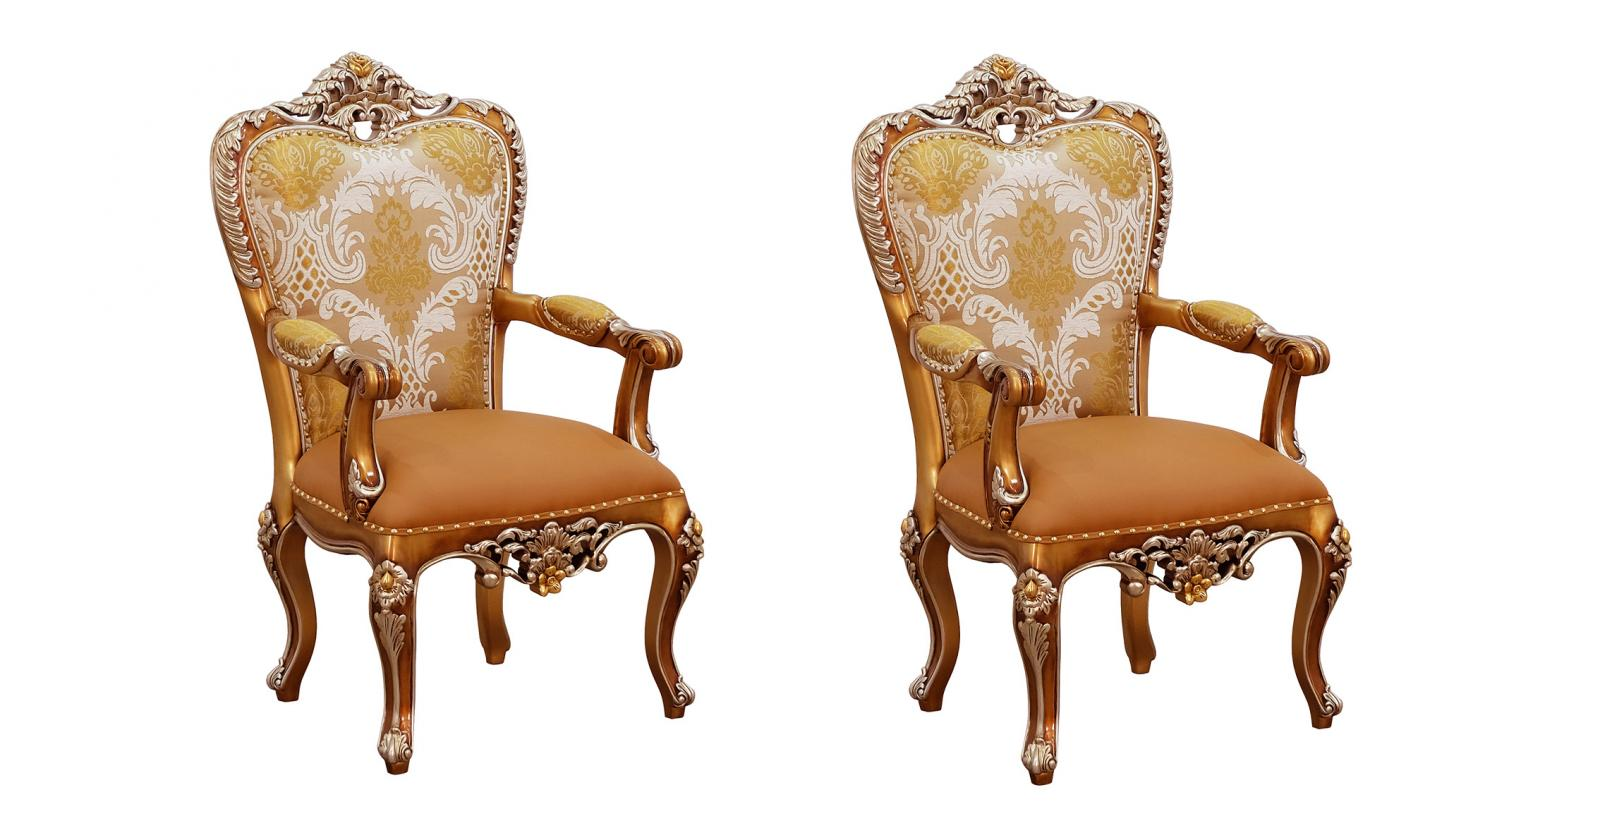 Classic, Traditional Brown, Silver, Ebony Fabric and Glass, Wood, Solid Hardwood Dining Arm Chair Set 2 pcs ST. GERMAIN by European Furniture